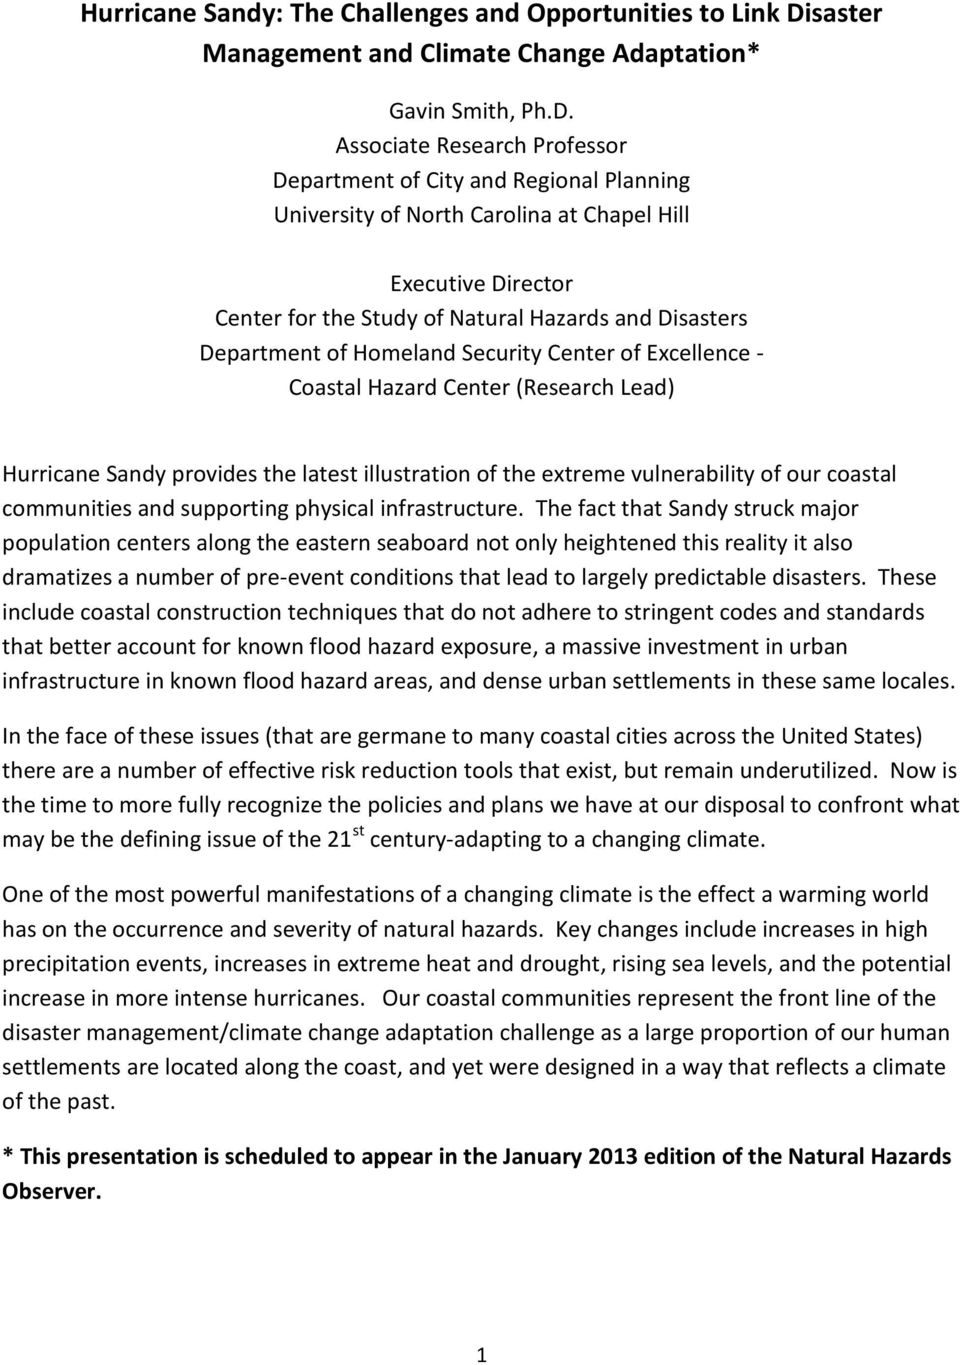 Associate Research Professor Department of City and Regional Planning University of North Carolina at Chapel Hill Executive Director Center for the Study of Natural Hazards and Disasters Department